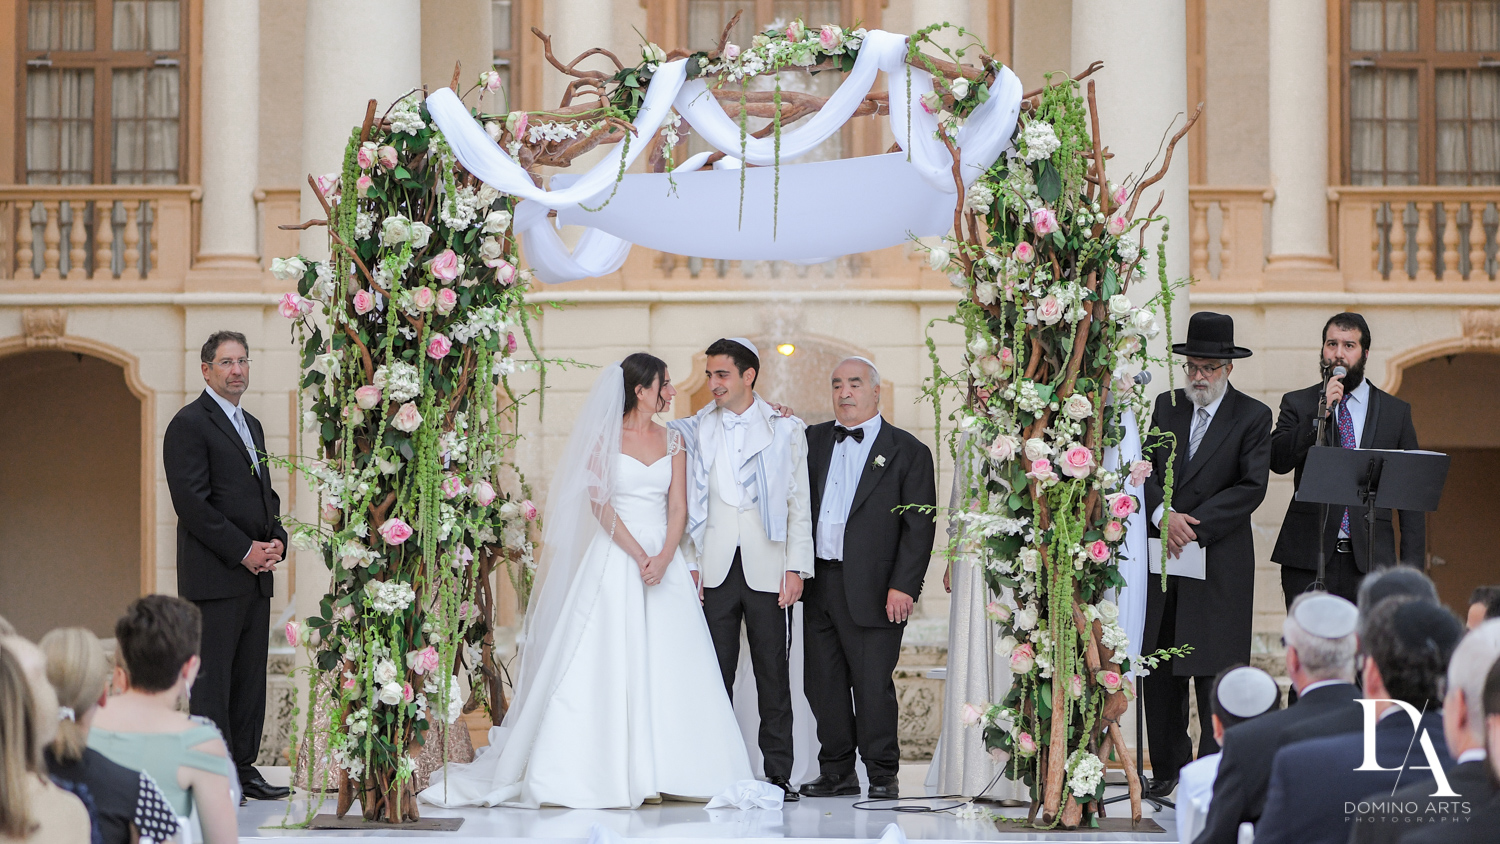 under the chuppah at Modern Luxury Jewish Wedding Photography at Biltmore Miami Coral Gables